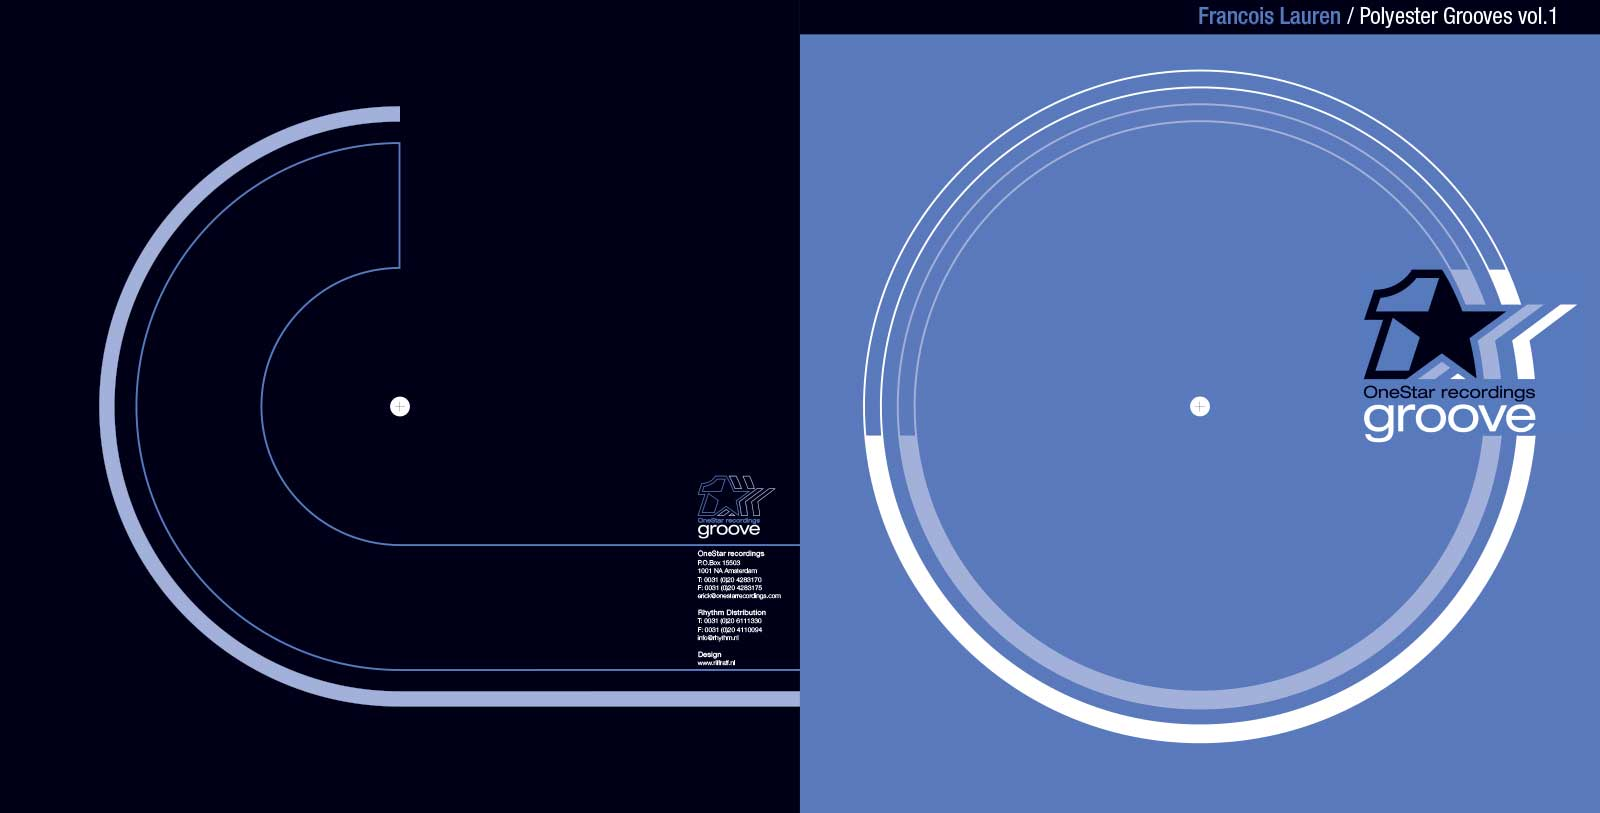 Design_Records_One-Star-Groove-1600x